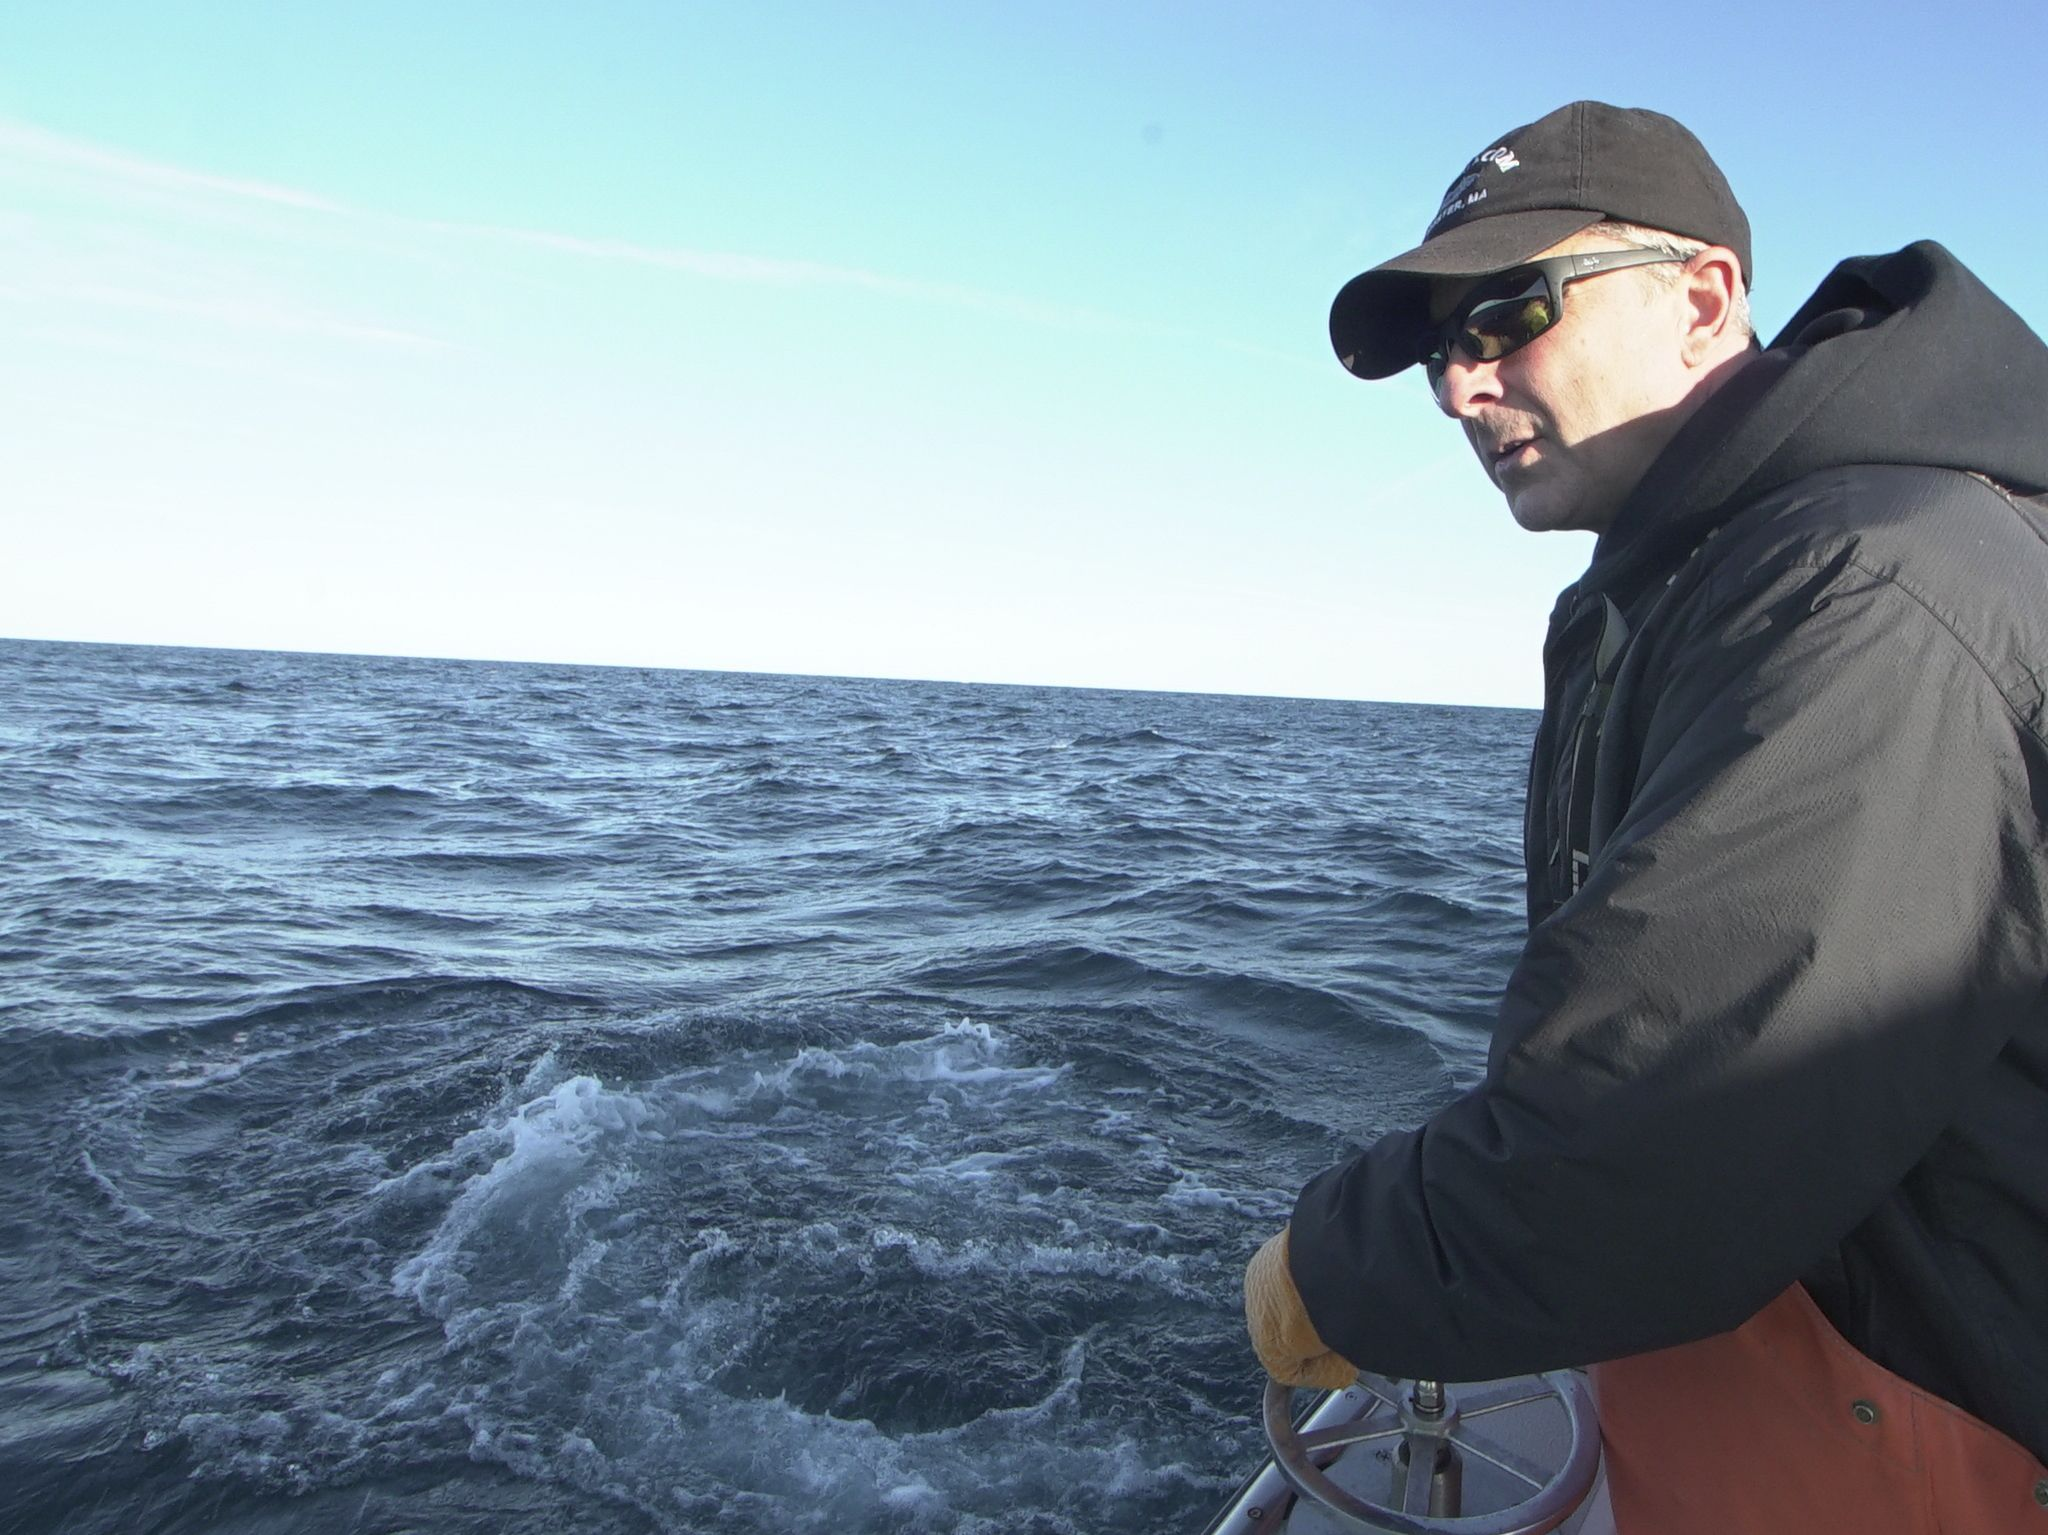 Captain Dave Carraro on the rear steering wheel. This image is from Wicked Tuna: Outer Banks. [Photo of the day - November 2020]